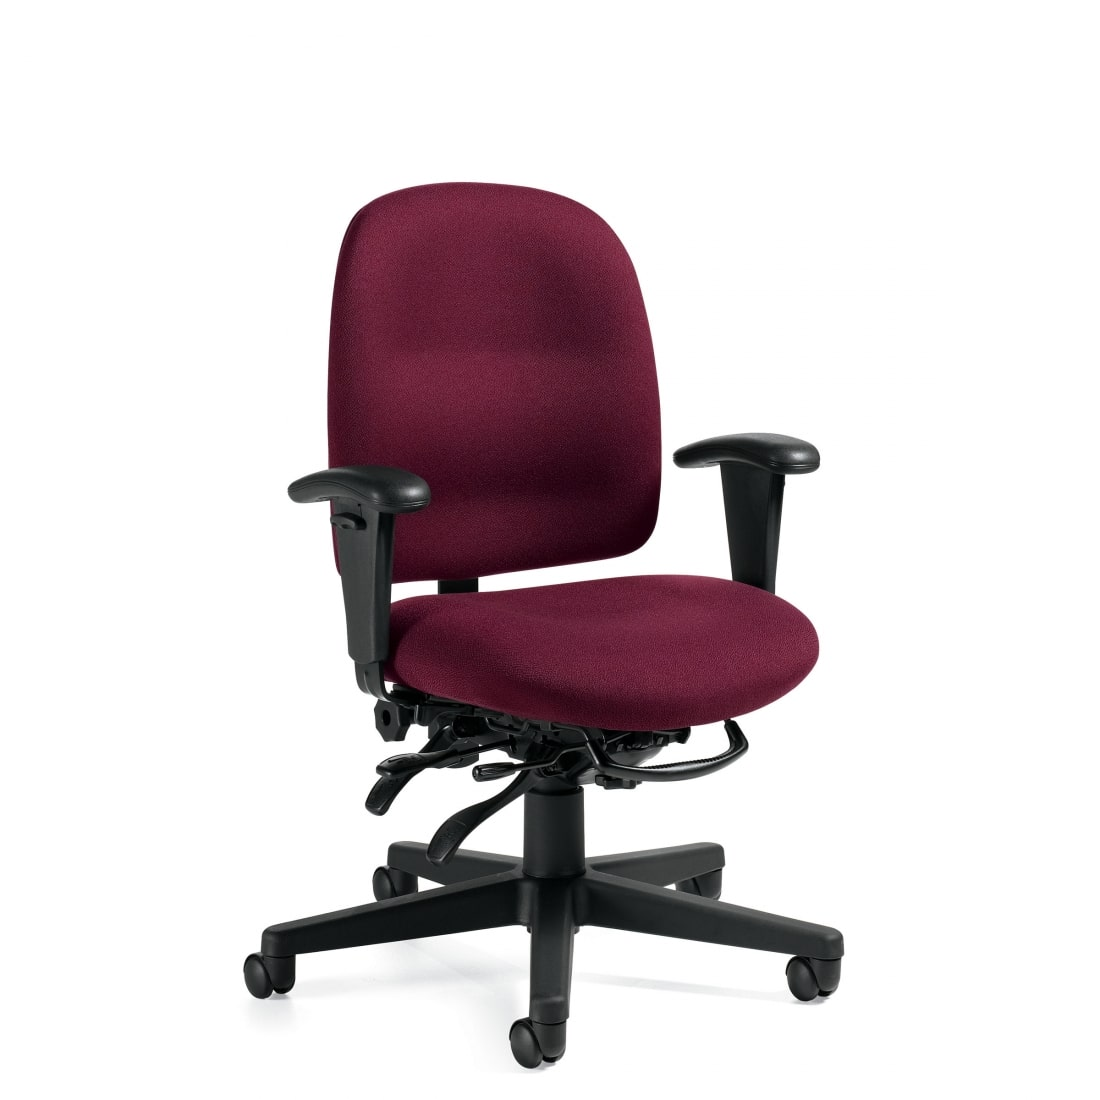 Burgundy Upholstered Industrial Cleanroom Low Back Multi-Tilter